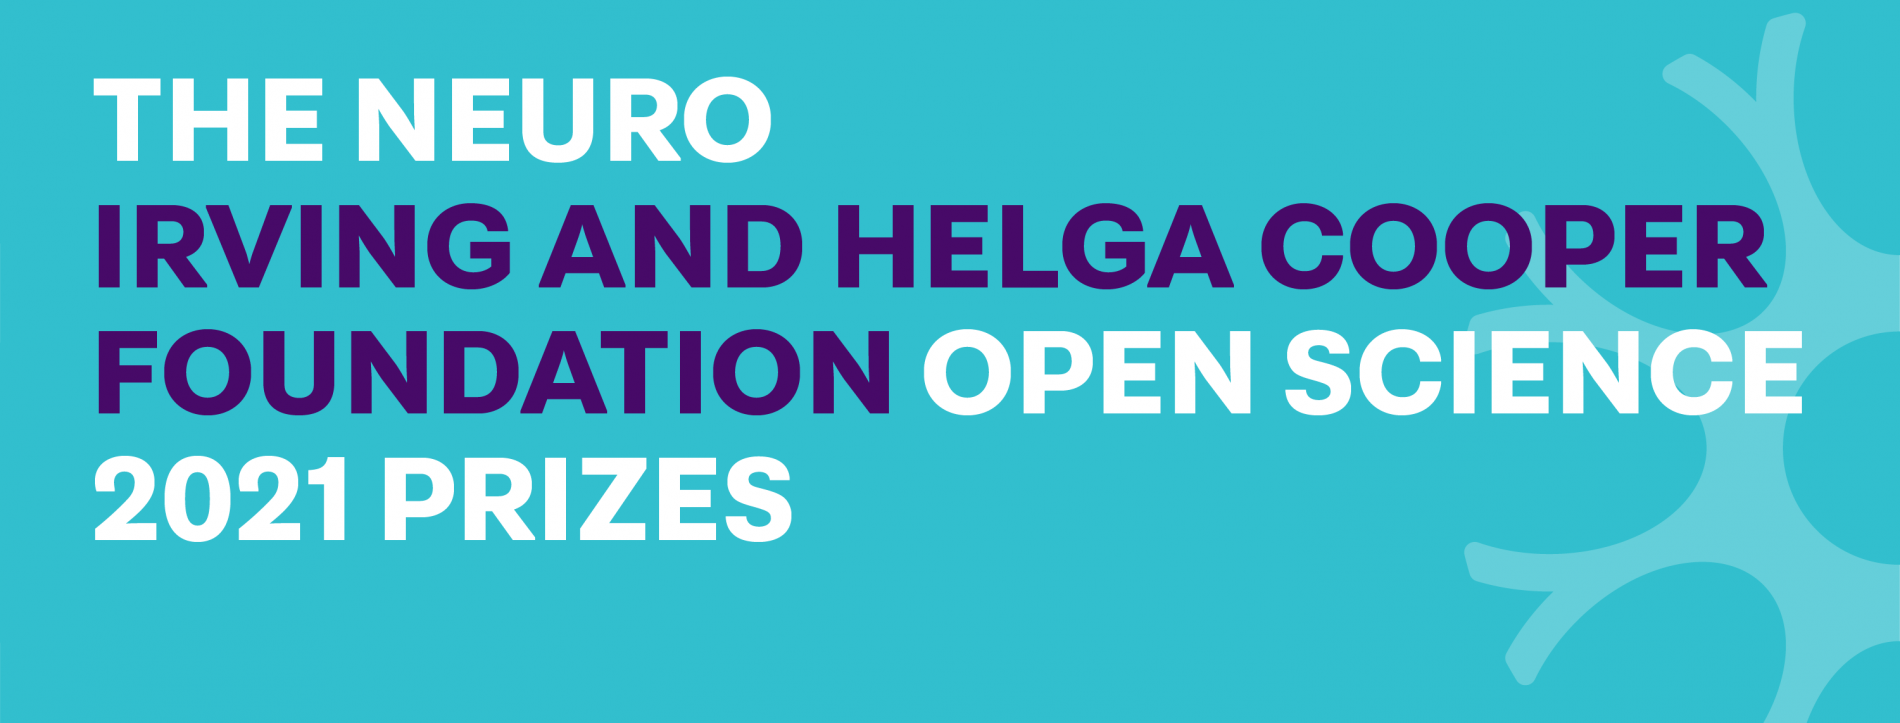 The Neuro – Irving and Helga Cooper Foundation Open Science Prizes